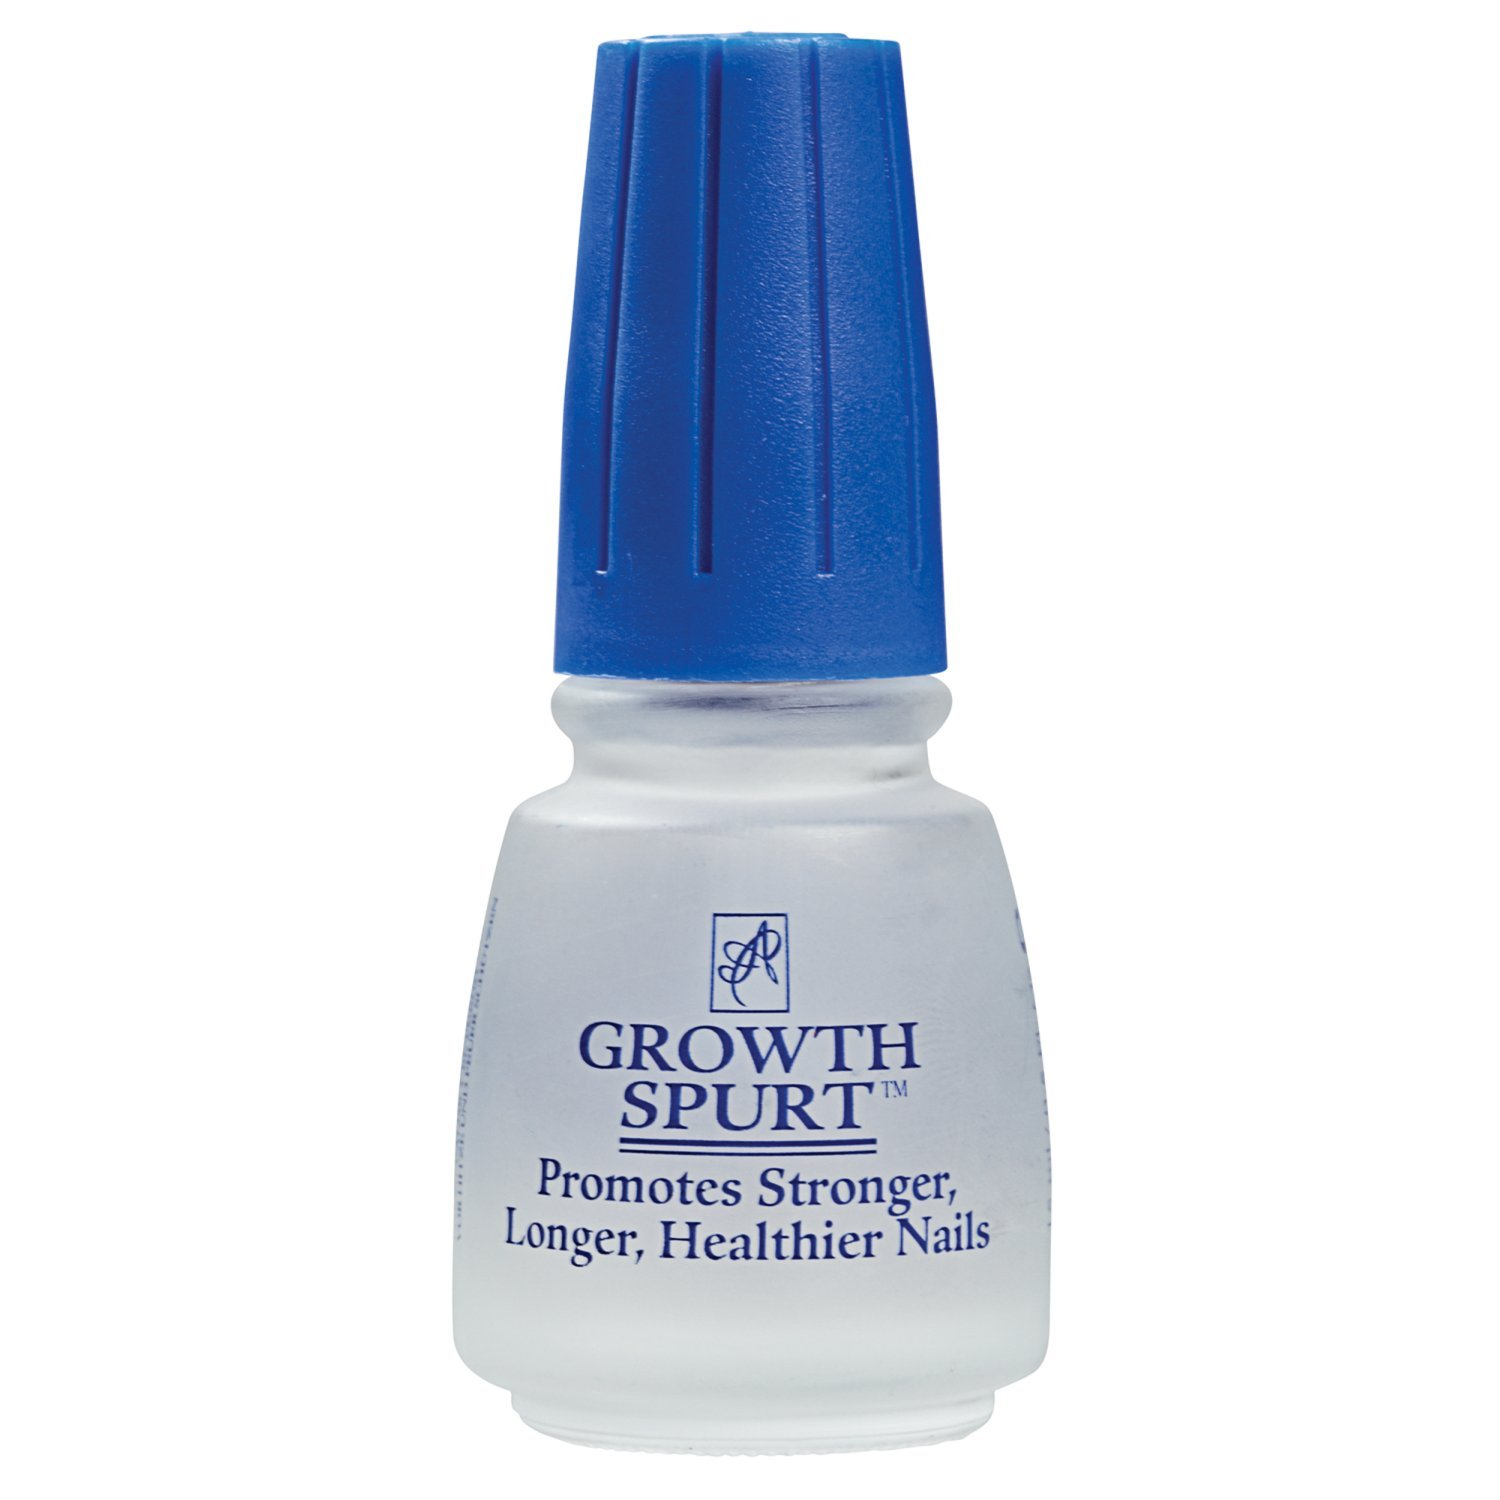 Growth Spurt Nail Treatment CDG/AMERICAN CLAS